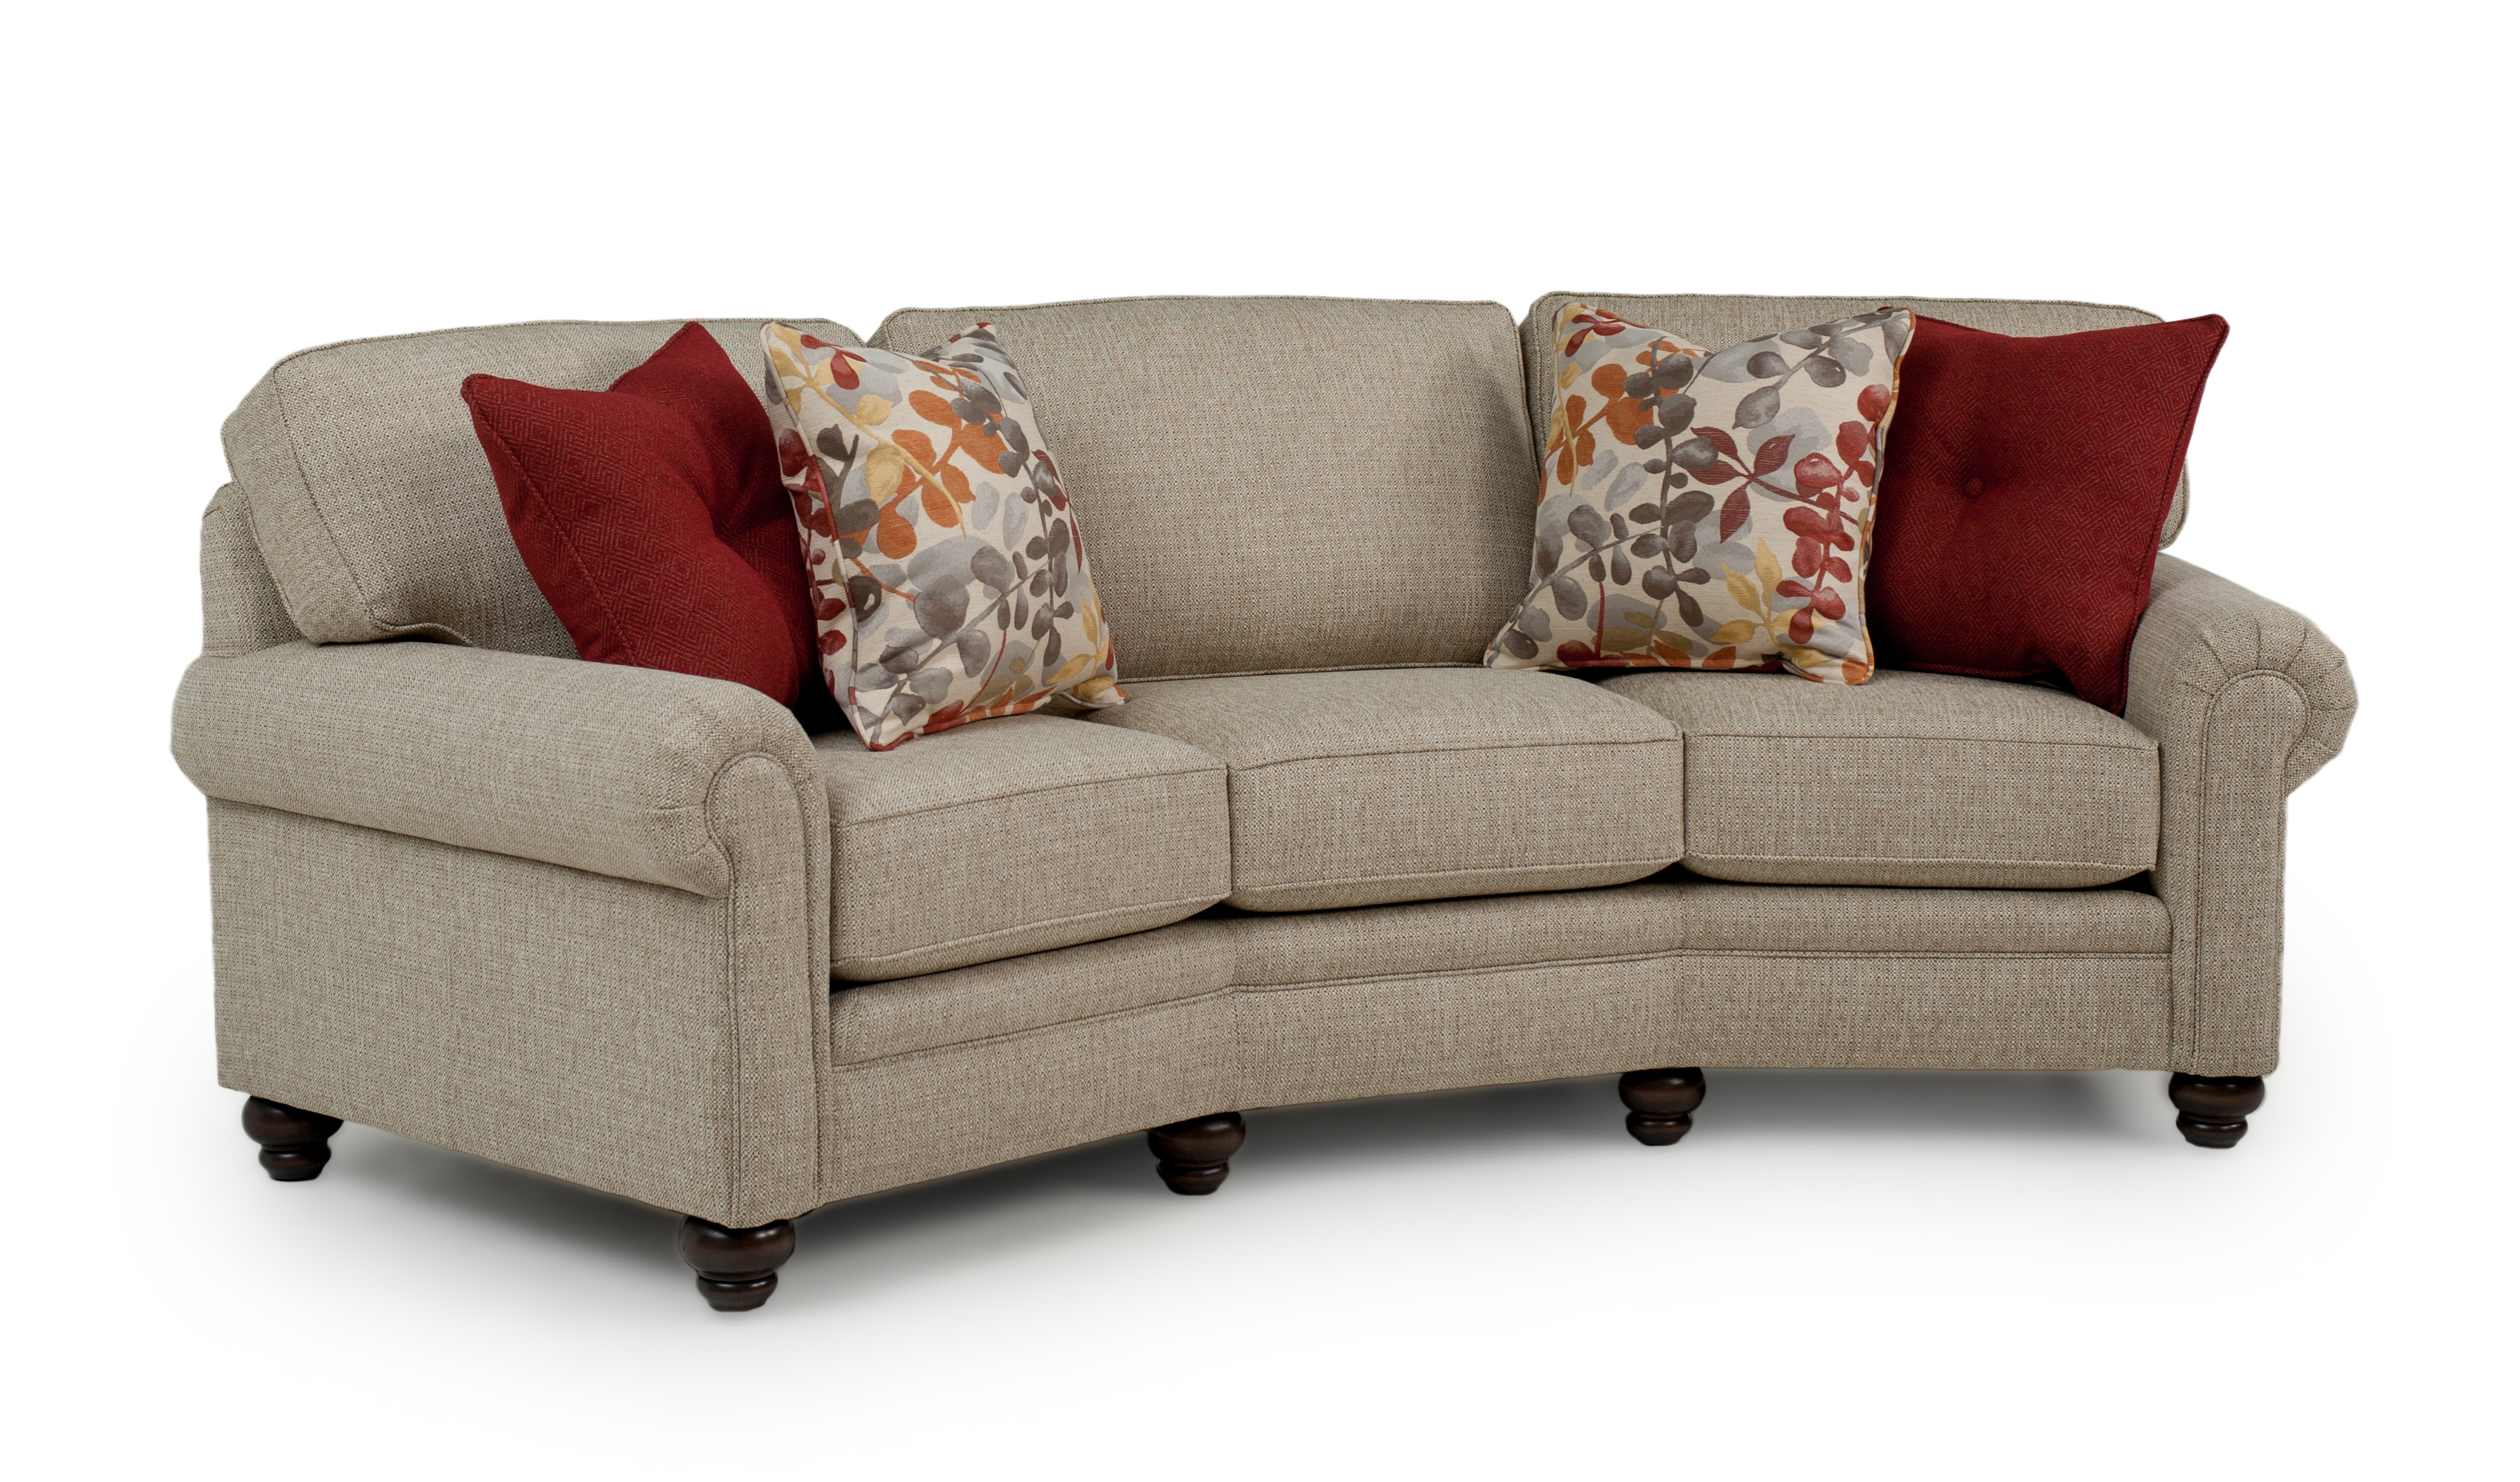 Quality Sofa For Less Conversation Sofas Review Saugerties Furniture Mart